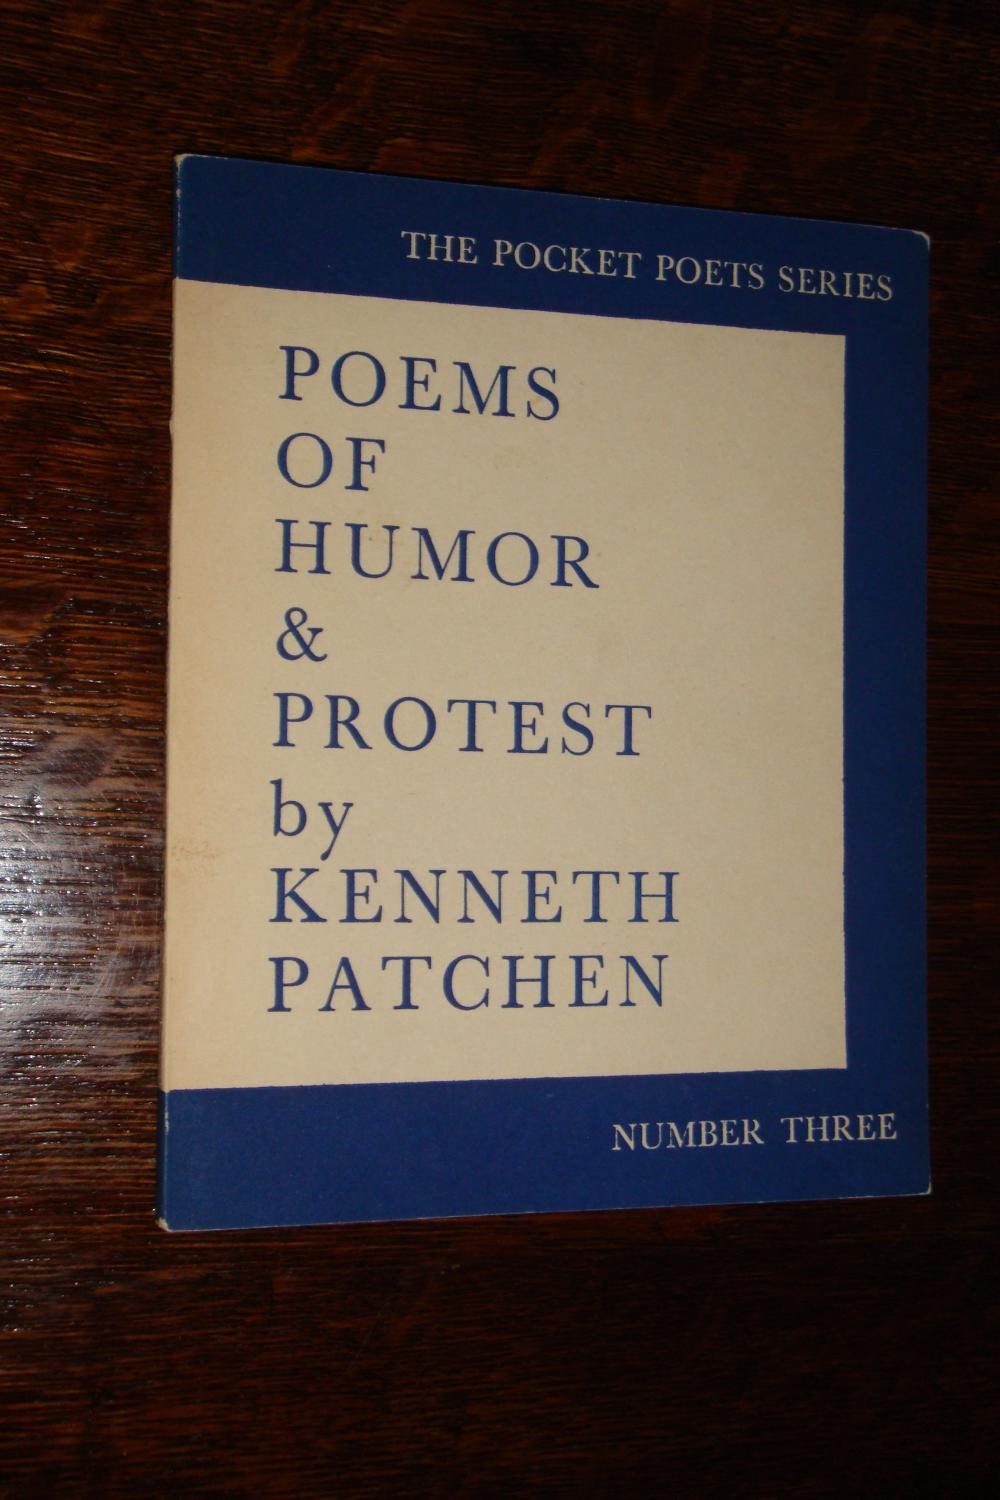 Poems of Humor & Protest (signed by Lawrence Ferlinghetti - editor) by  Patchen, Kenneth - Lawrence Ferlinghetti: Very Good Soft cover (1962) 1st  Edition, Signed by Author(s)